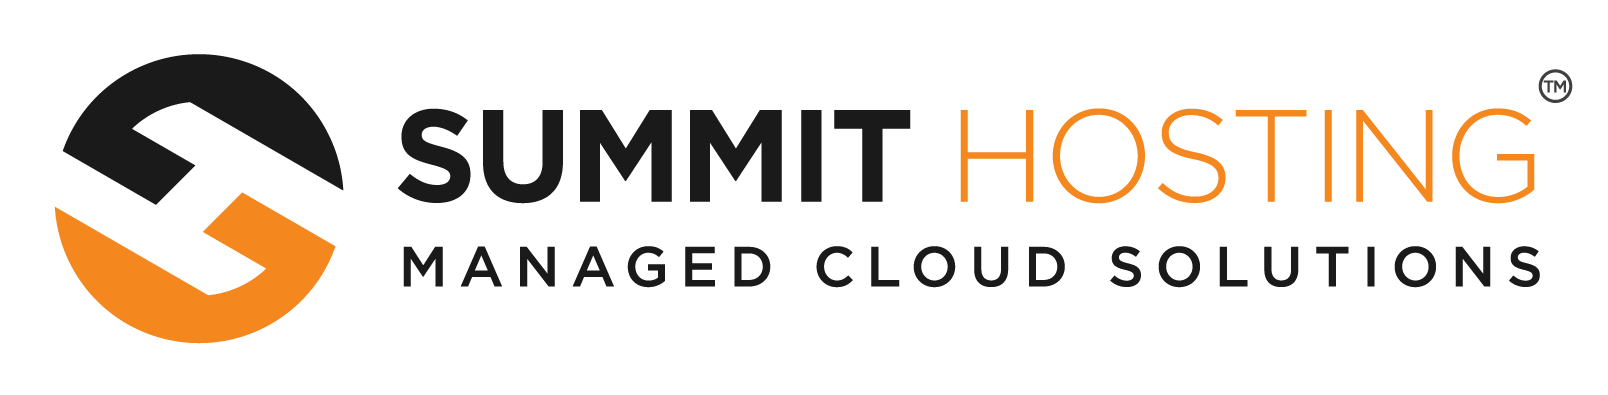 Summit Hosting Help Center home page